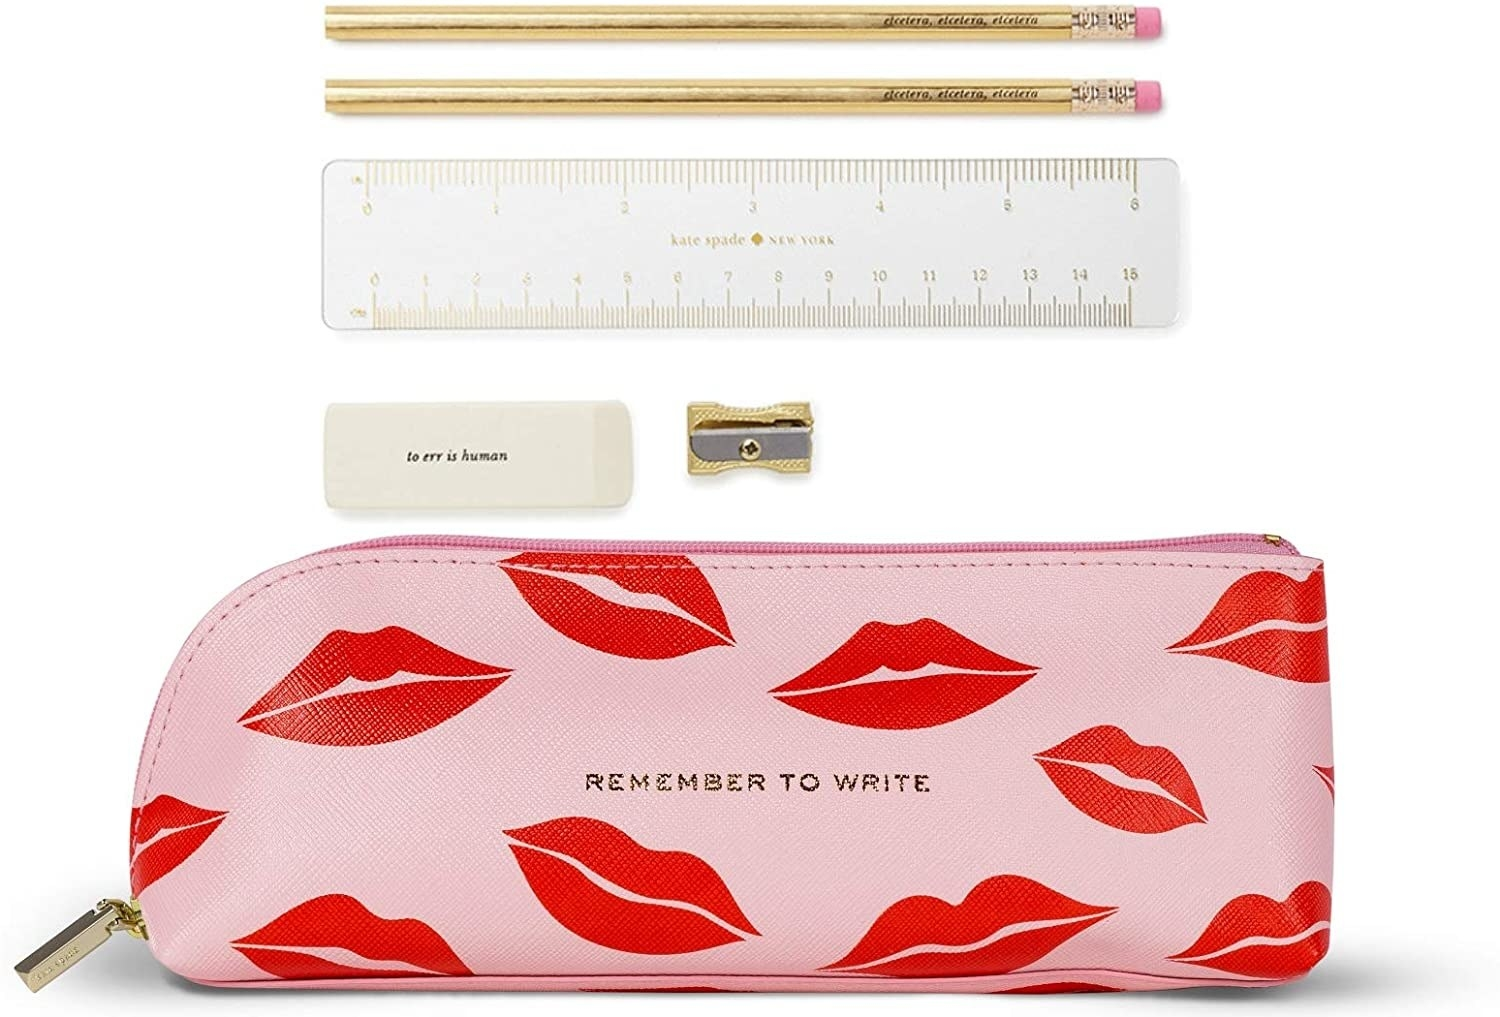 A small leather pencil case with two pencils, a ruler, an eraser, and a pencil sharpener beside it